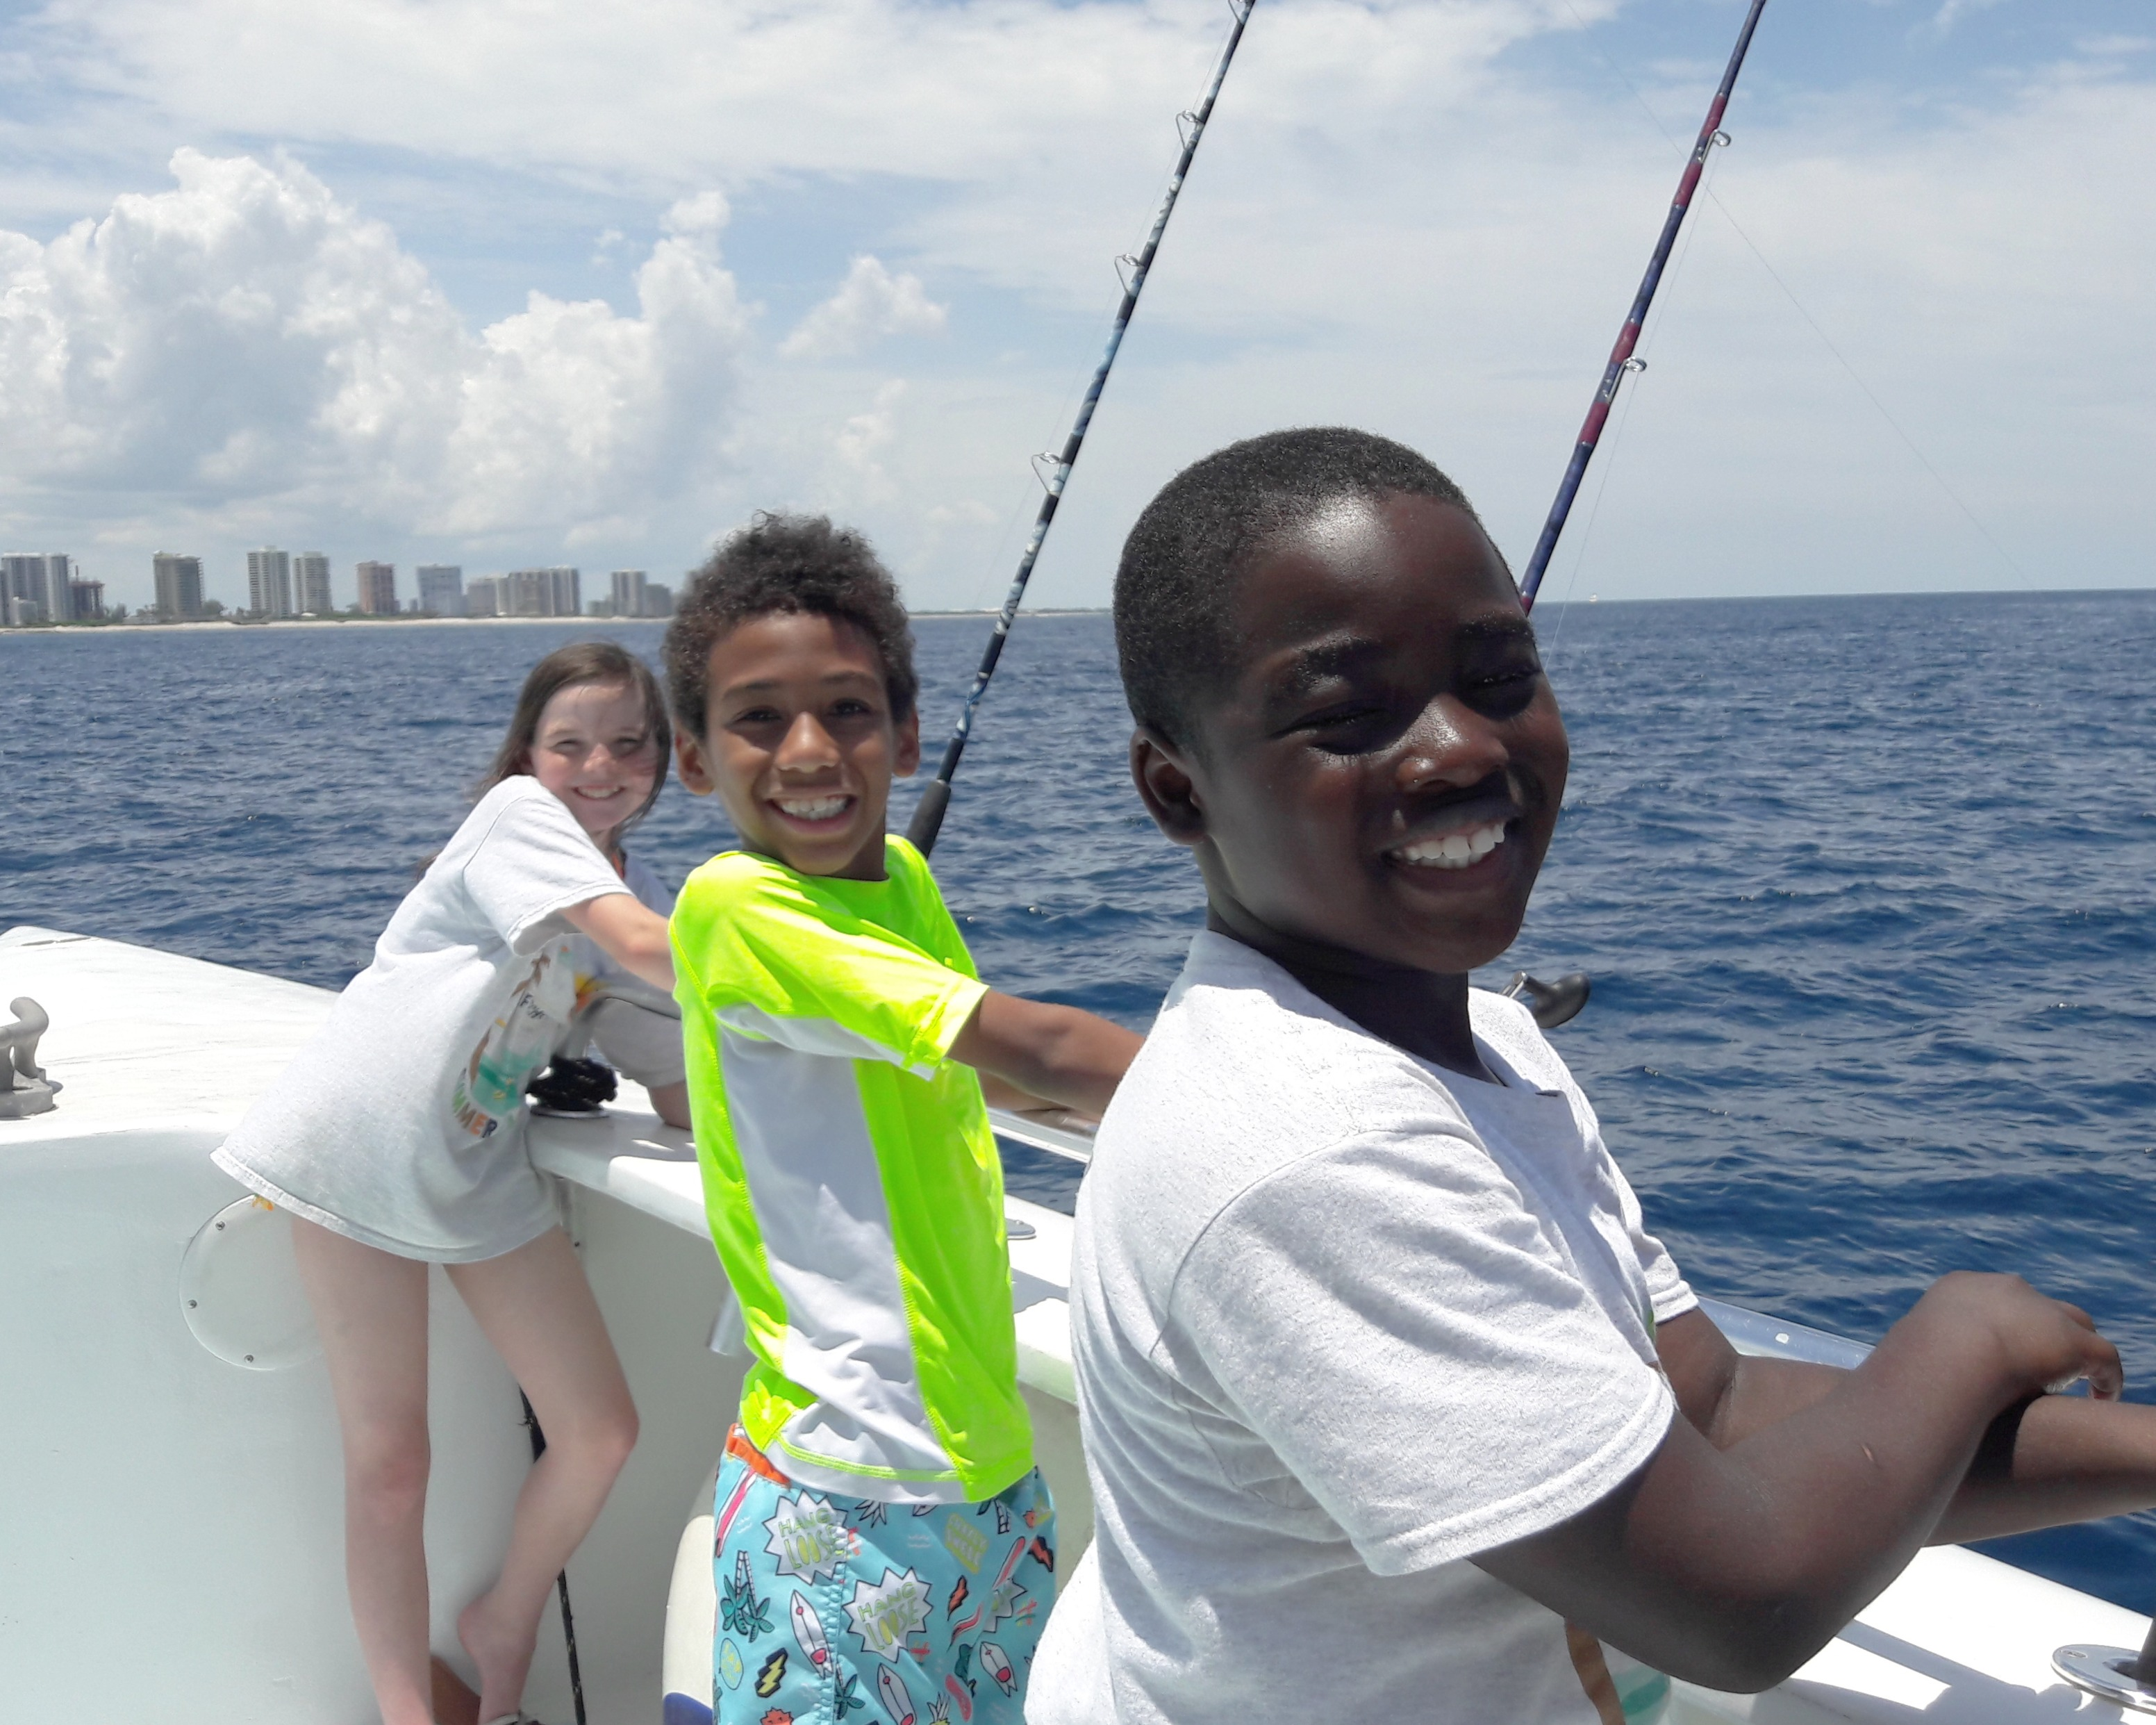 Florida Fishing Academy Boat Trip Image number 4